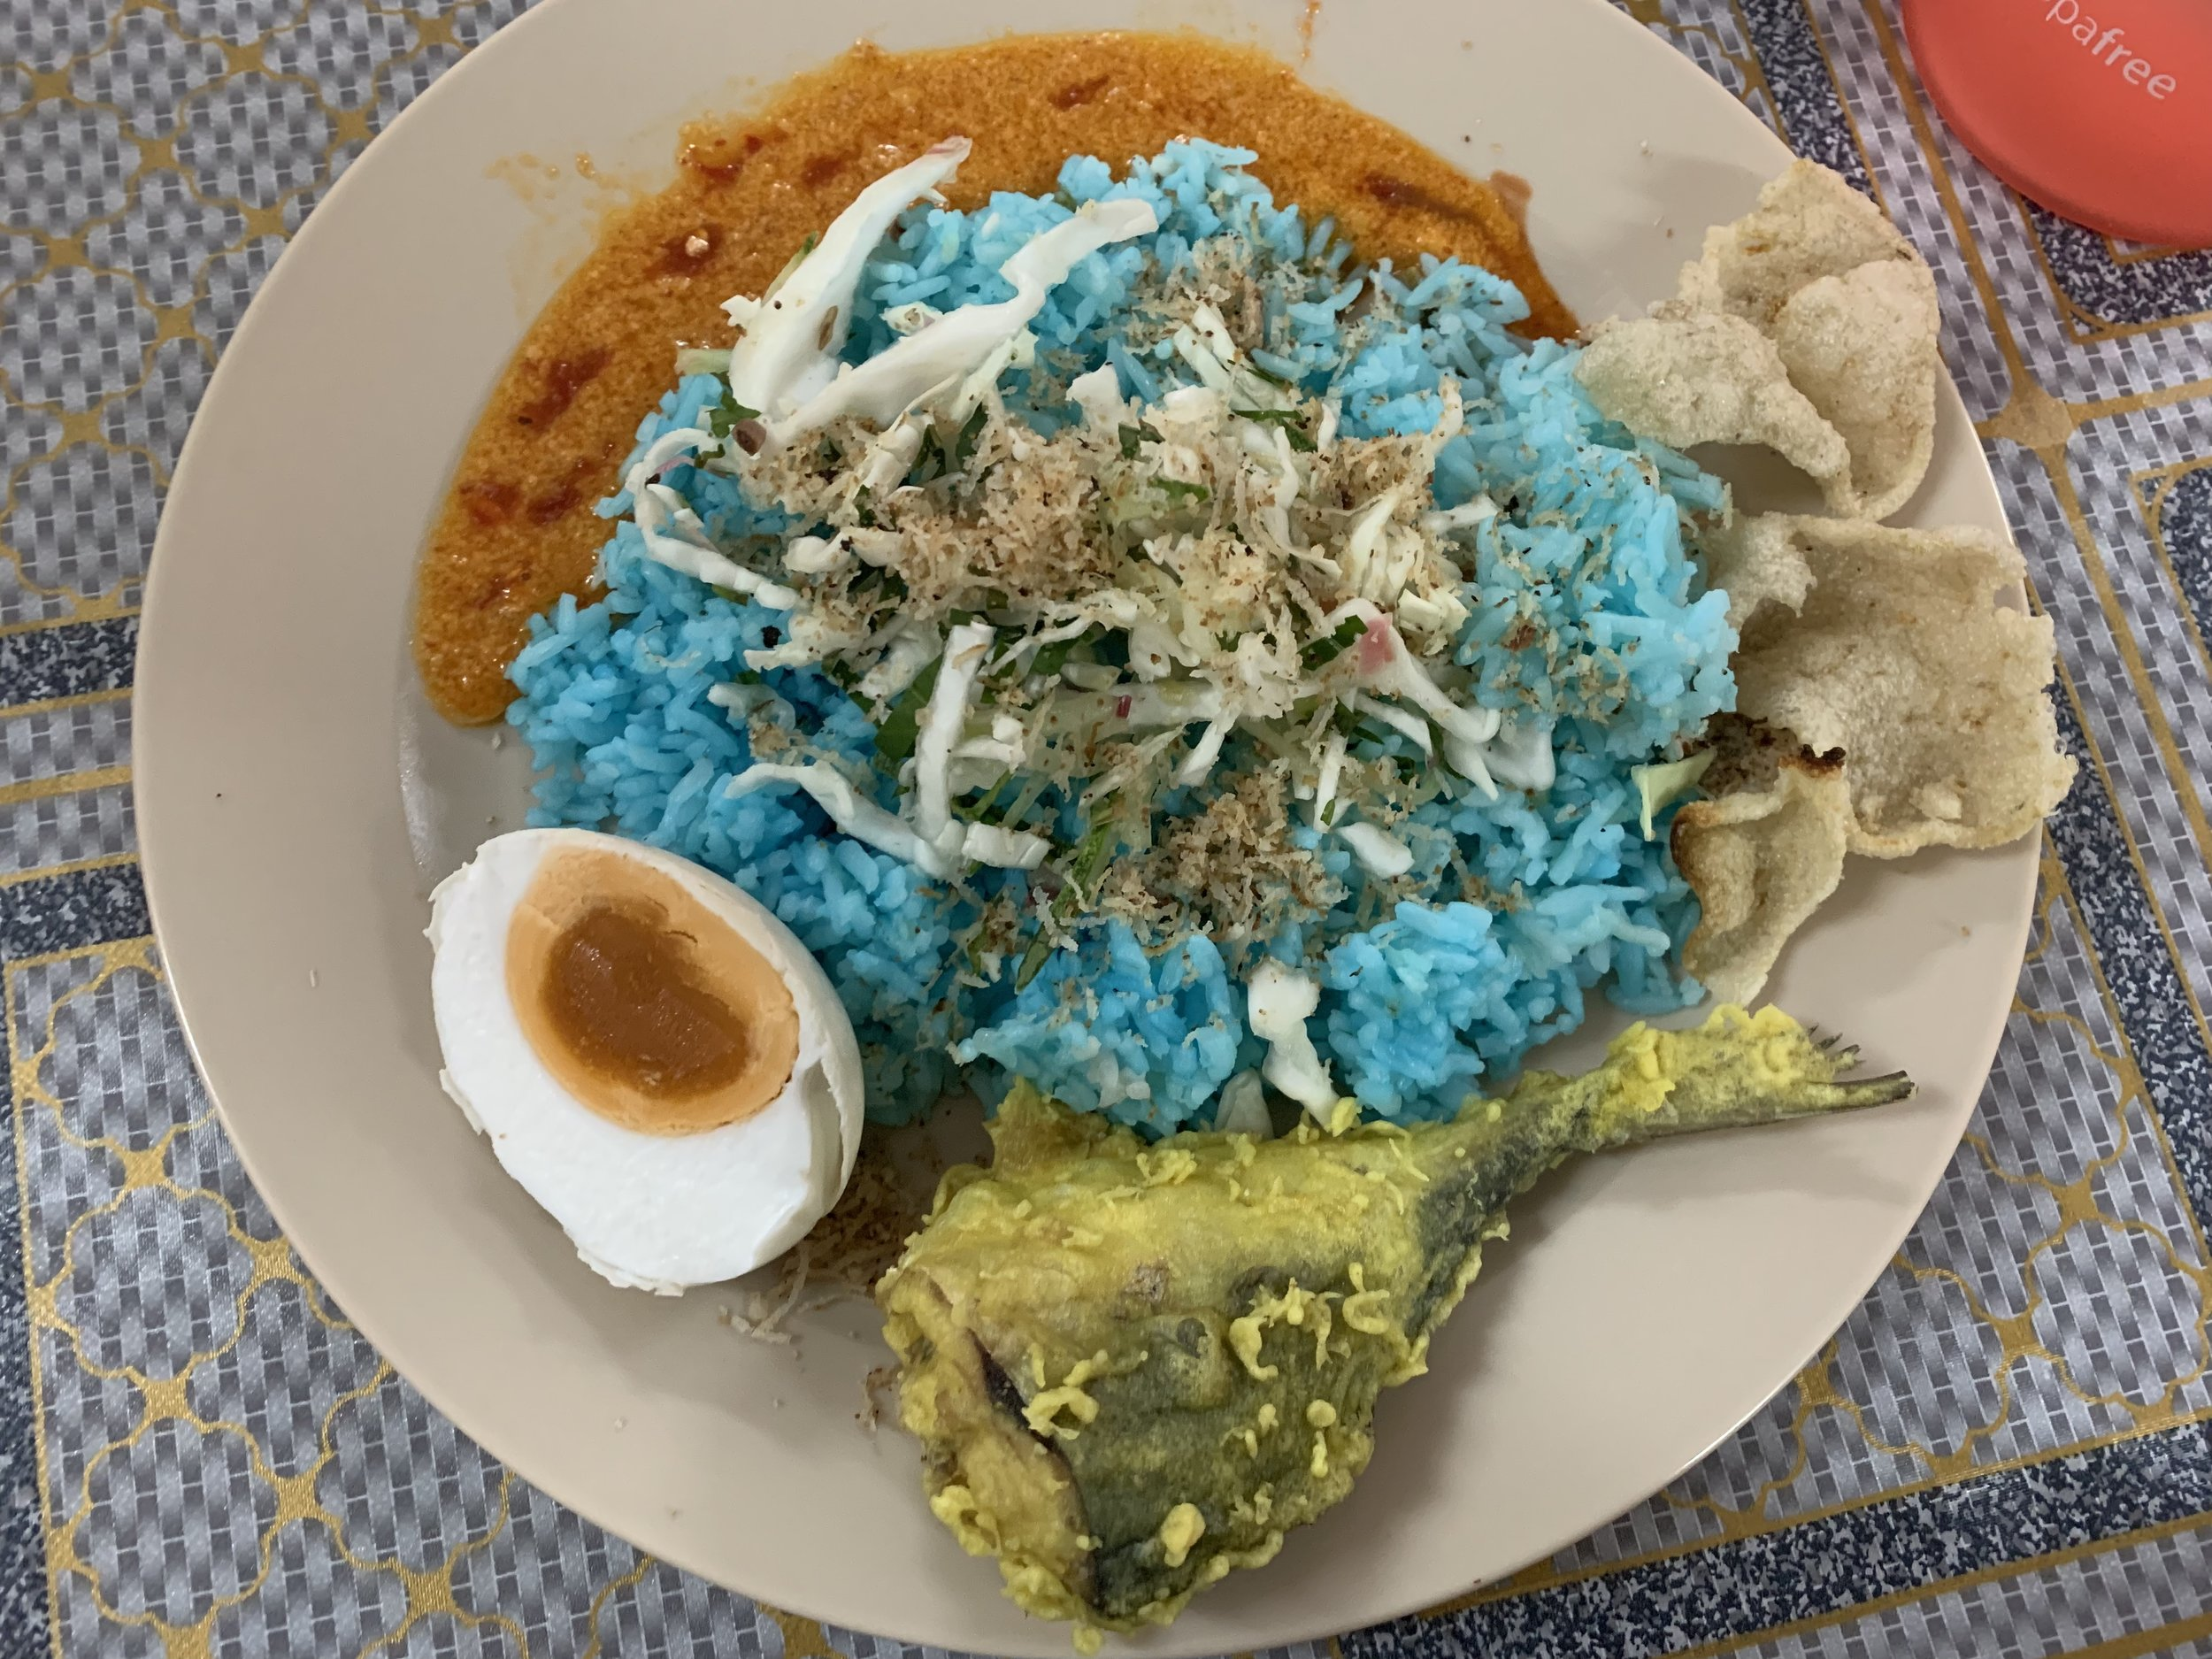 Nasi kerabu: Rice dyed blue with vegetables, salted egg, fish crisps, spicy sauce, fried fish, and fried coconut.